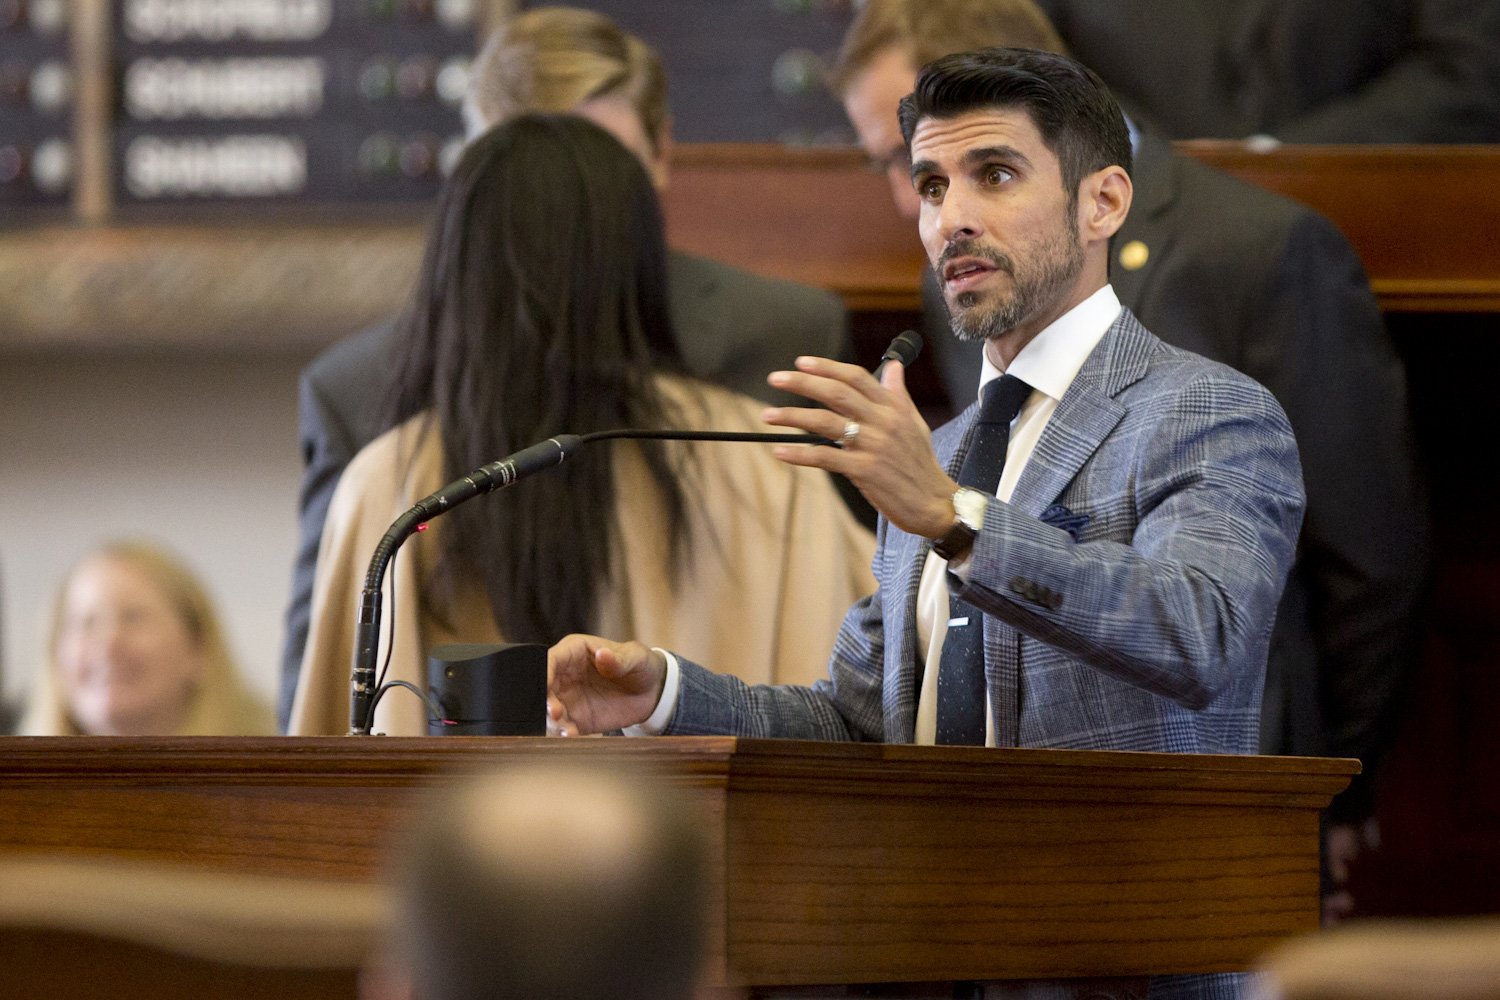 State Rep. Eddie Lucio III, D-Brownsville, was one of the co-authors of a measure that would've expanded the use of medicinal marijuana. Despite bipartisan support, the bill never made it to the House floor for a vote.